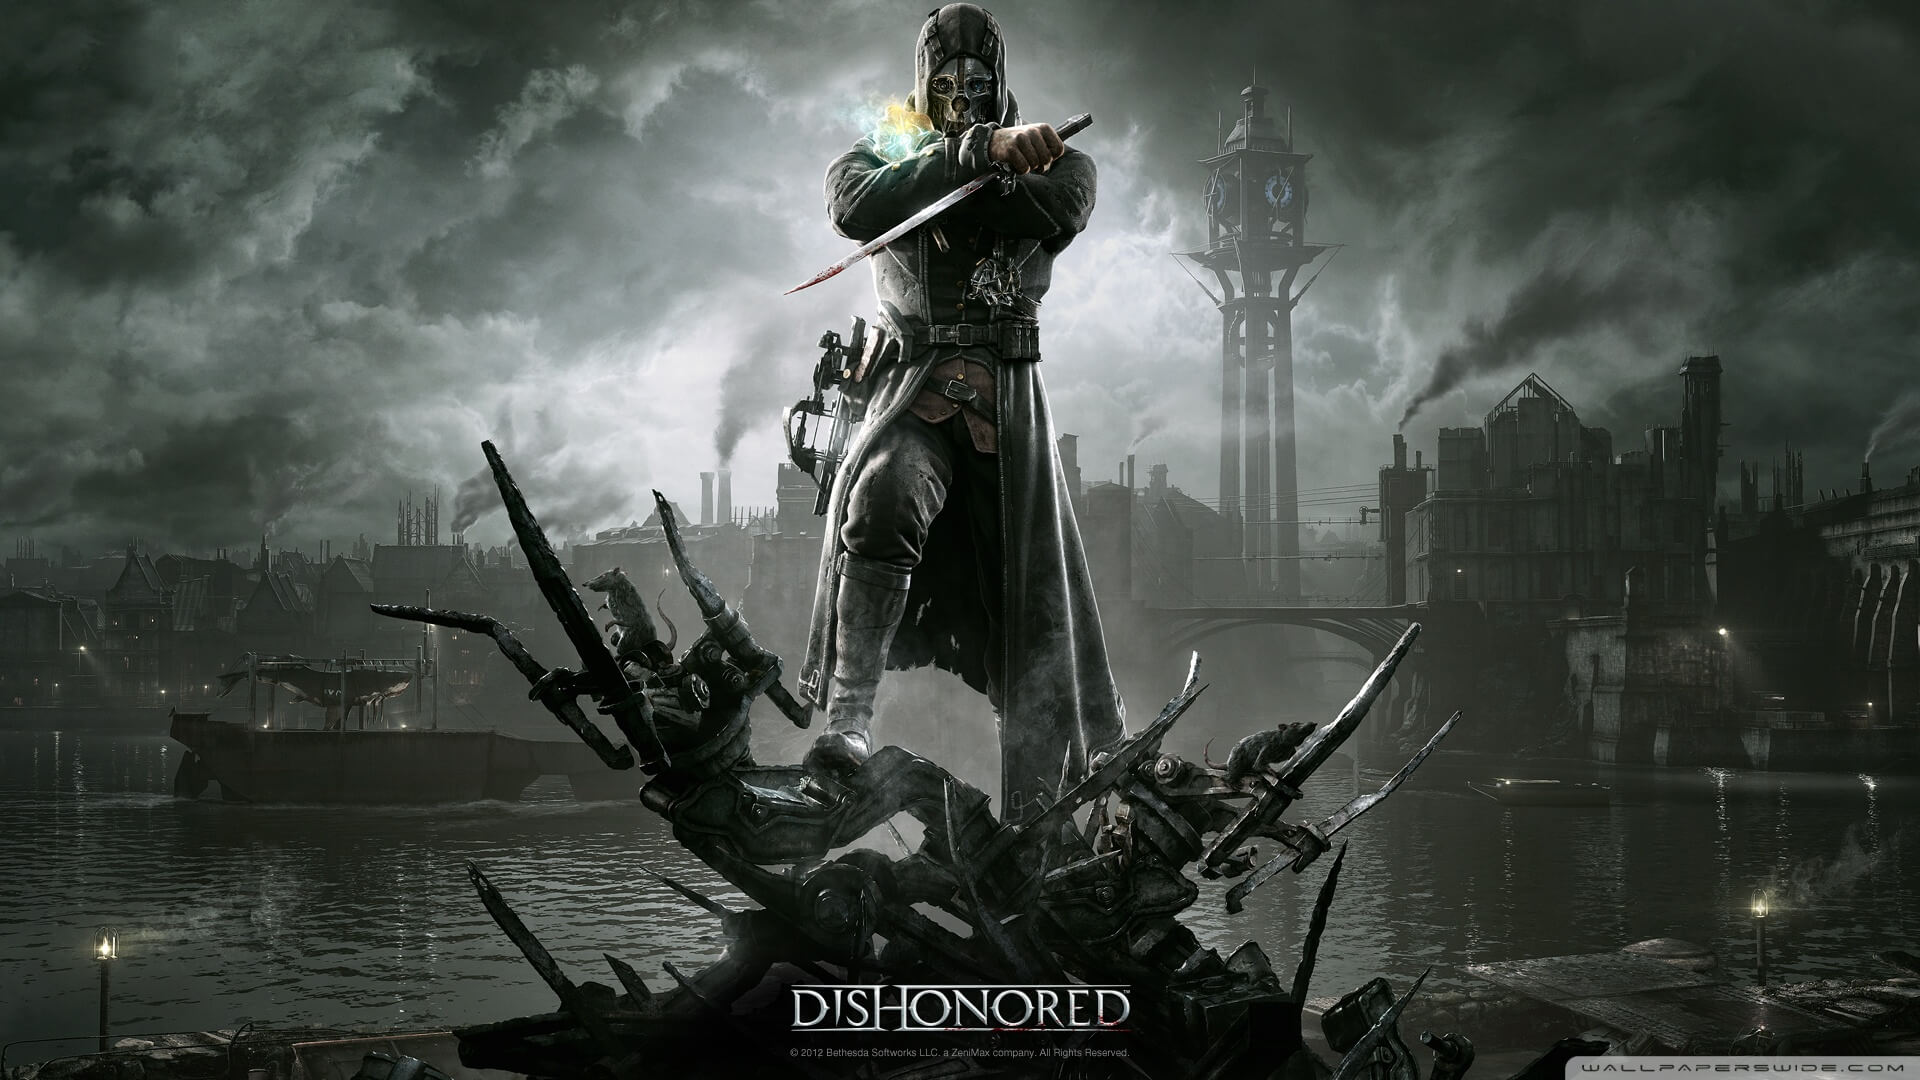 E3 2015: Dishonored 2 Officially Announced